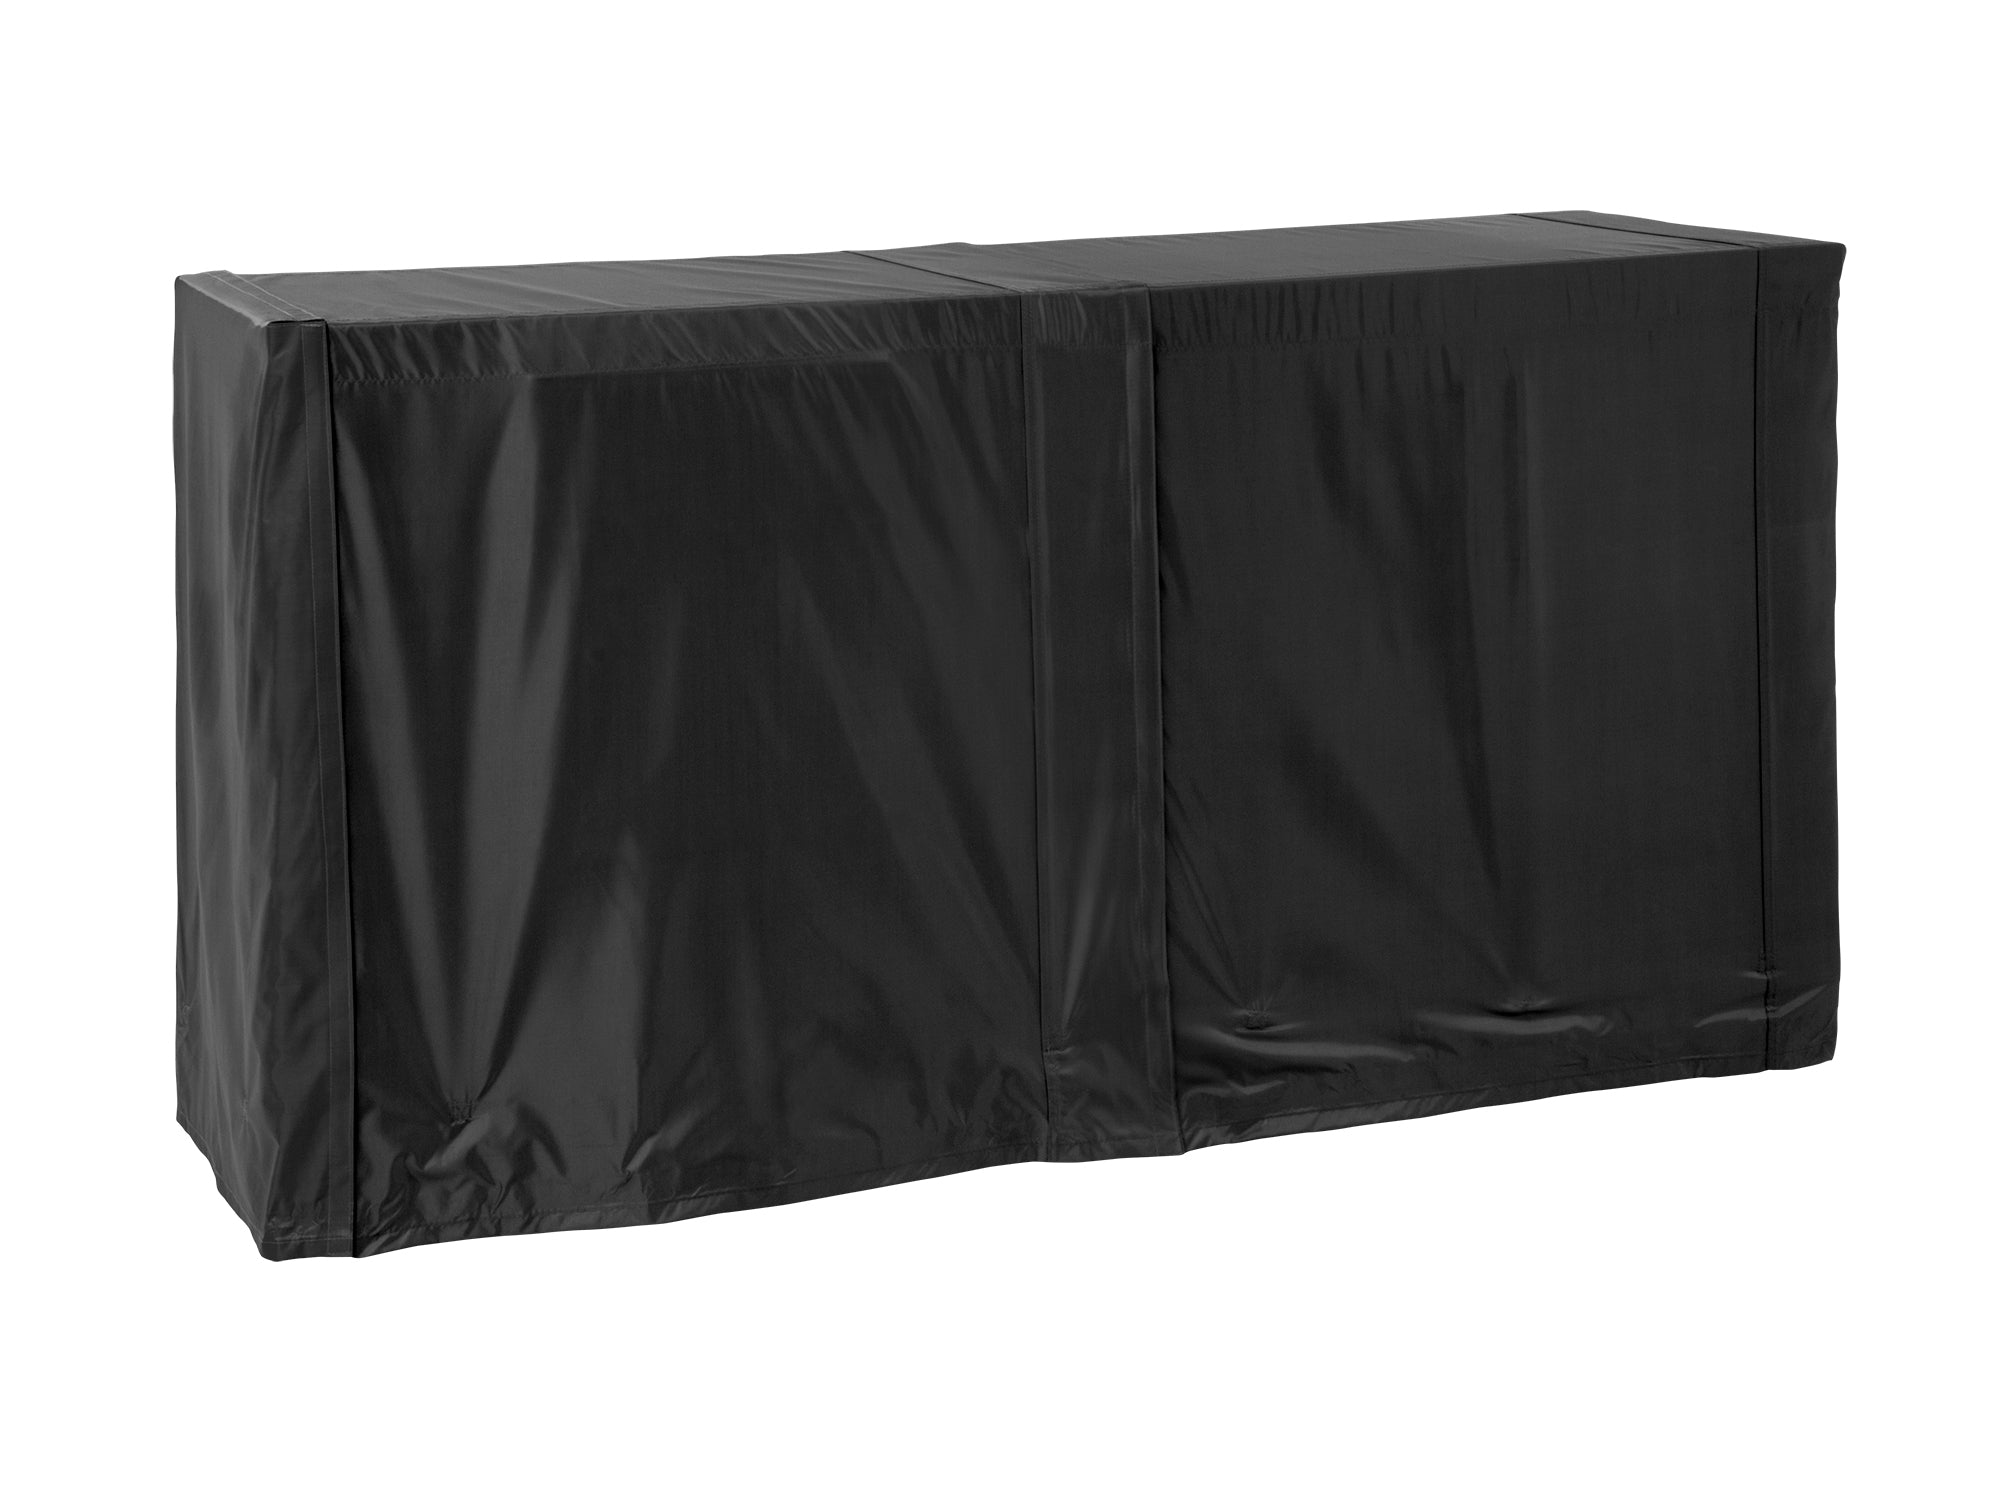 Outdoor Kitchen All-Season Cover Bundle: (2) 64 in. Cover, 90 Degree Corner Cover, Right/Left Side Panel Covers